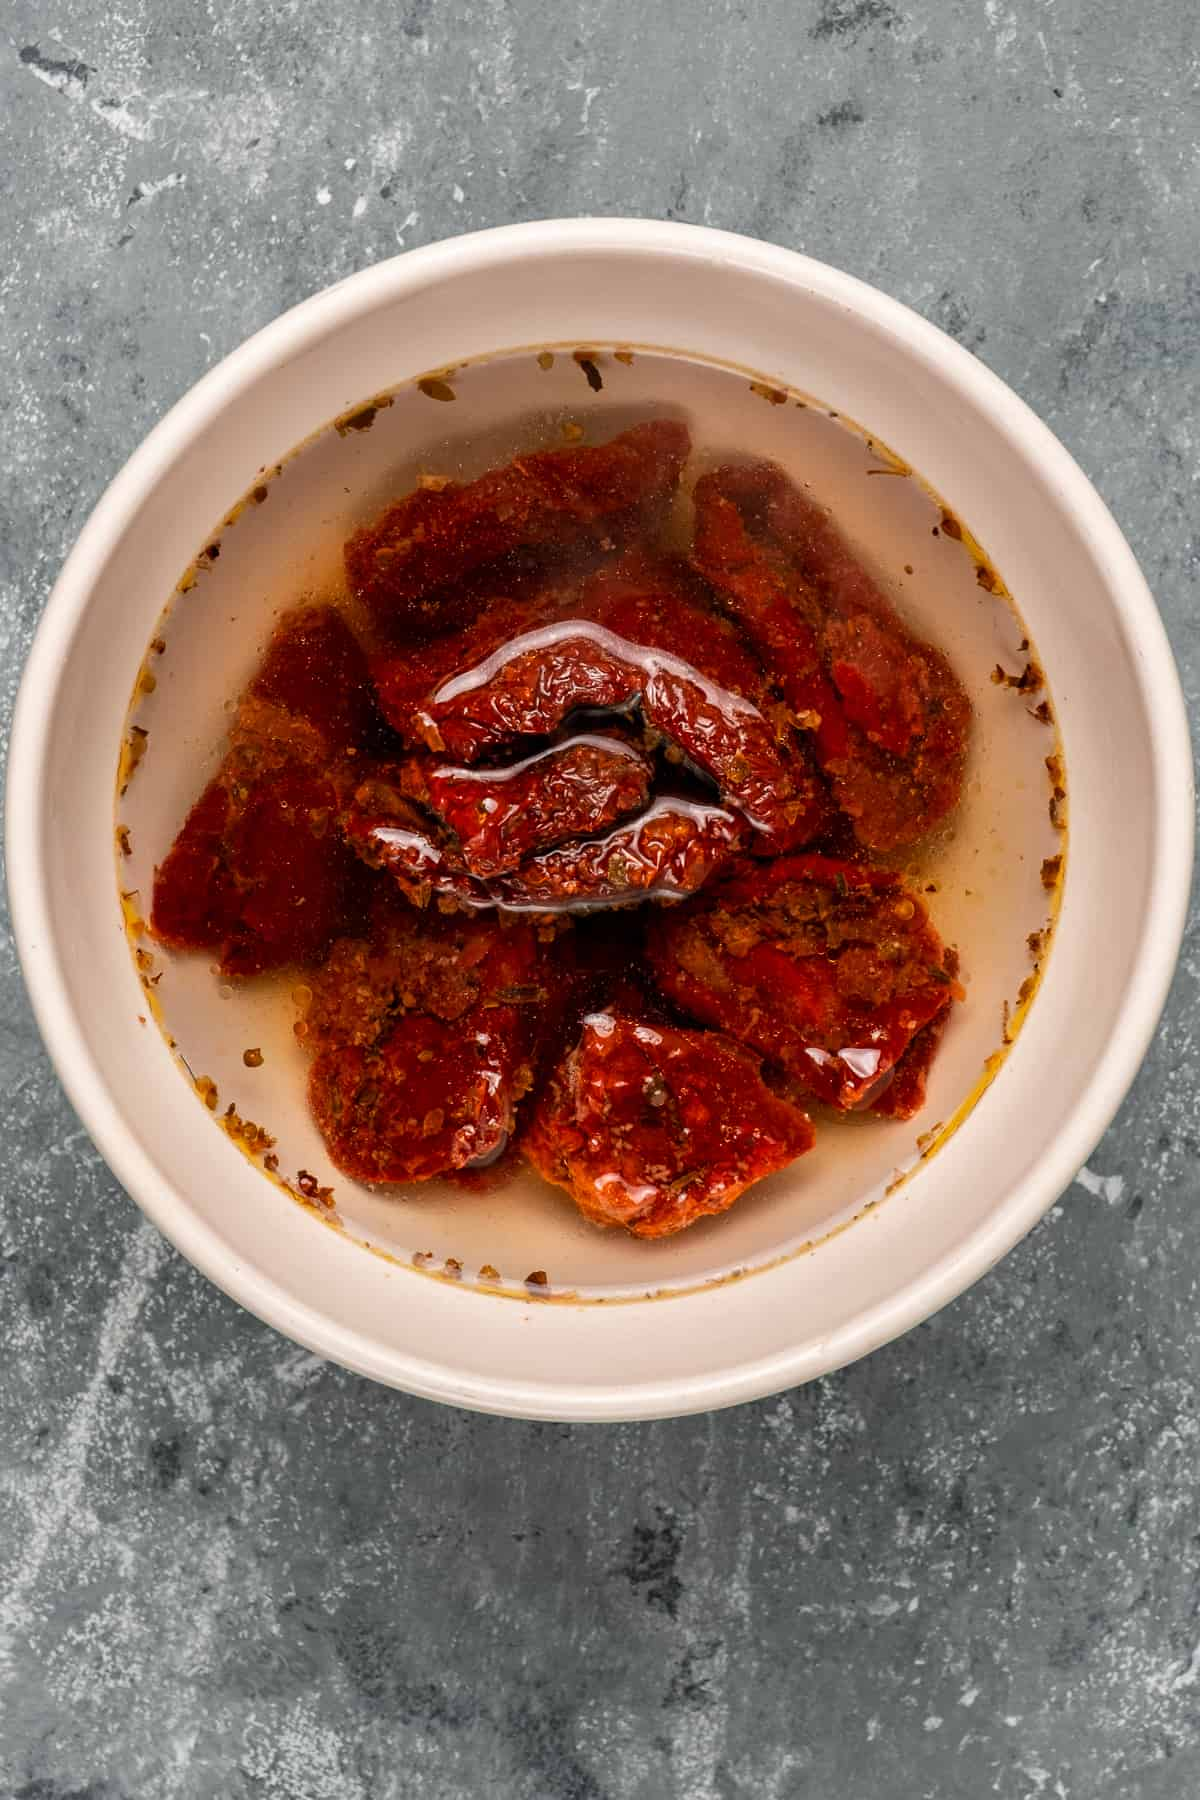 Sun-dried tomatoes soaked in water in a white bowl on a grey background.